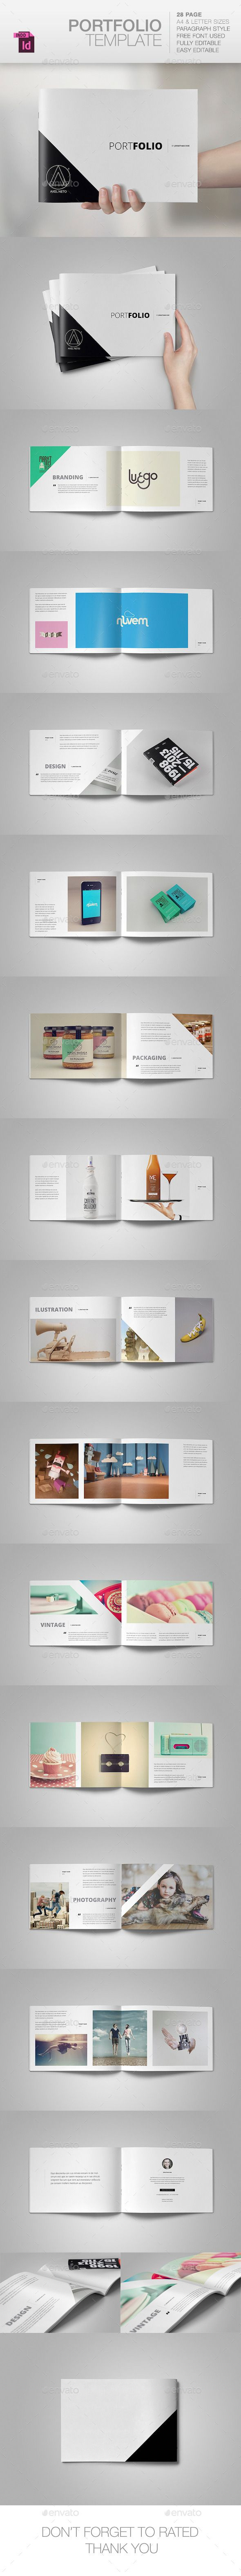 Portfolio Brochure Template #design Download: http://graphicriver.net/item/portfolio-template/10290456?ref=ksioks